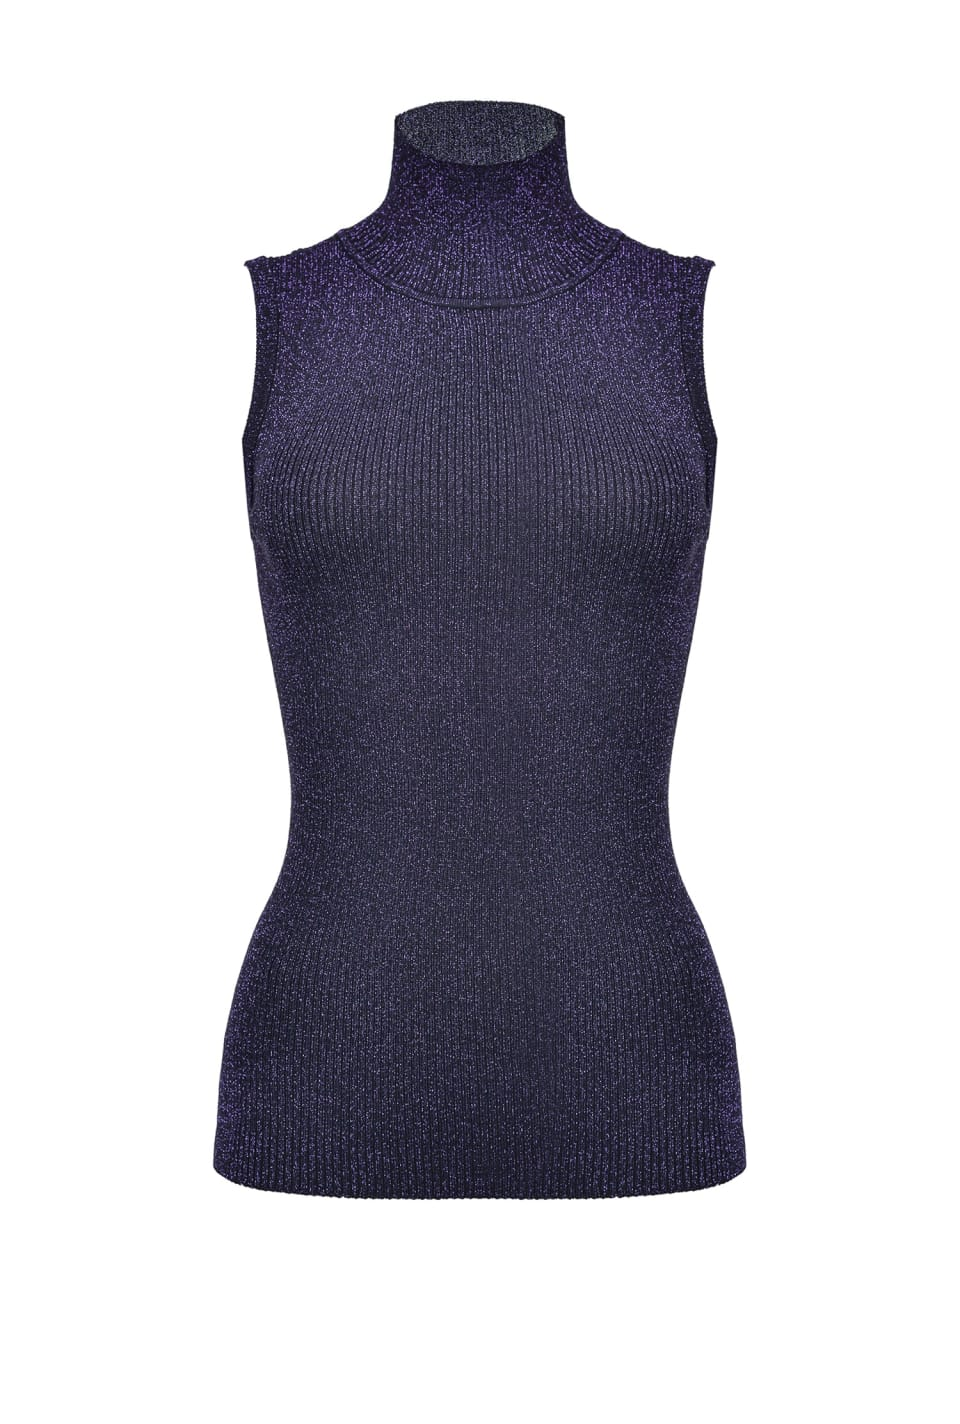 Sleeveless turtleneck in lurex